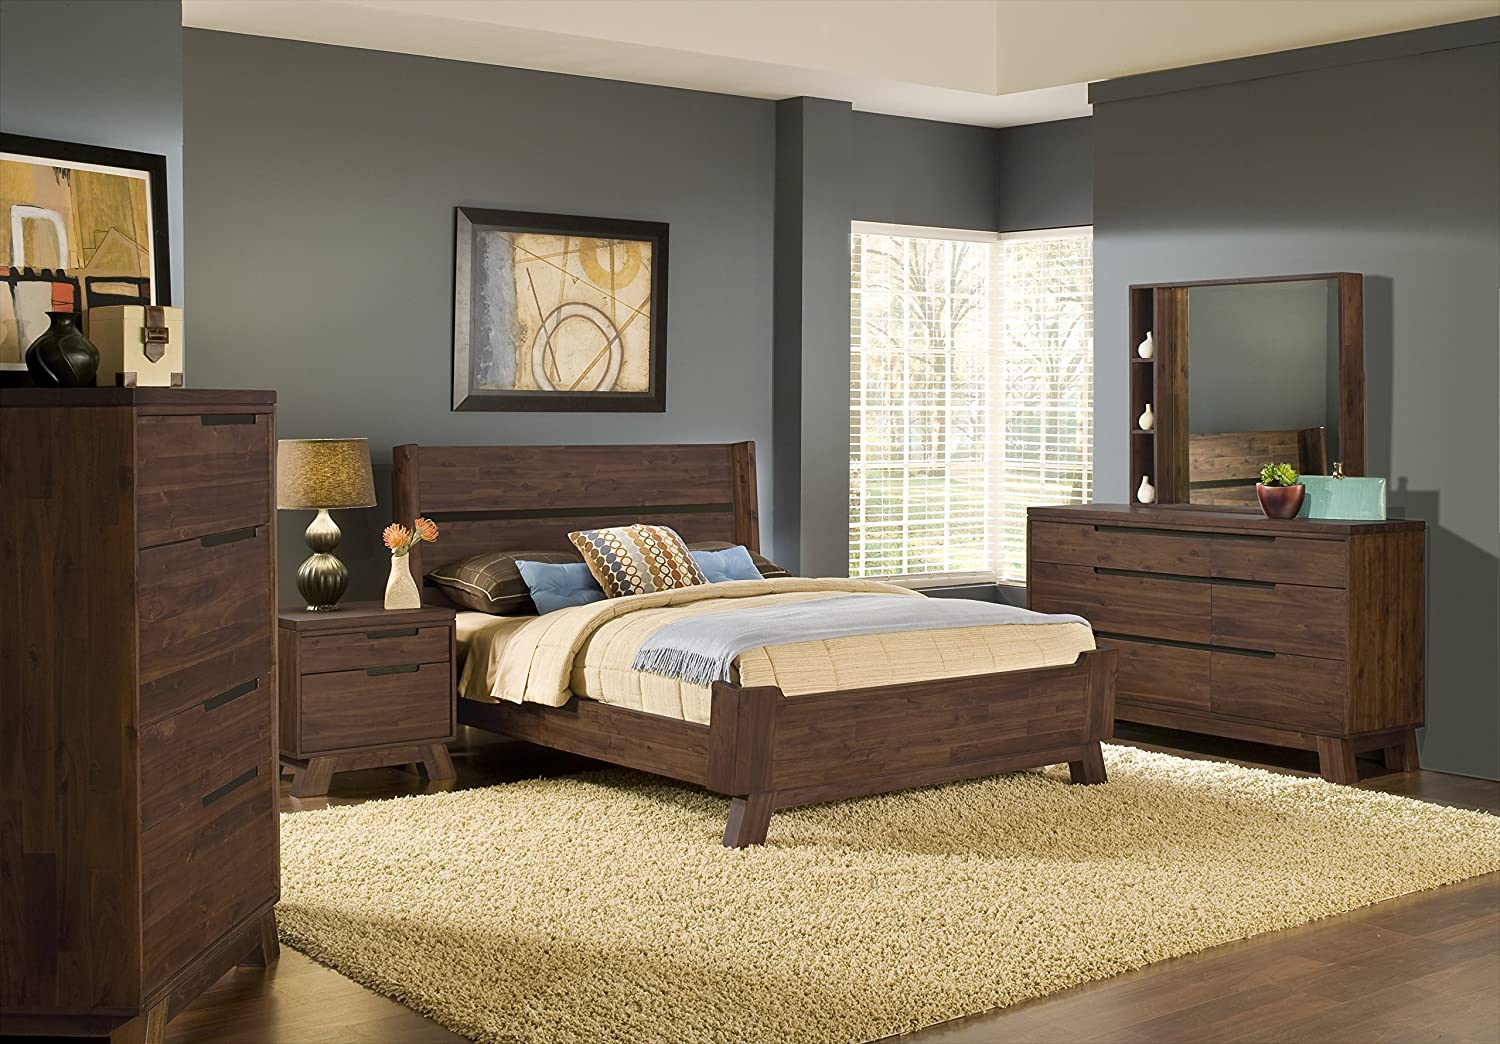 Amazon com  Modus Furniture 7Z48F5 Portland Solid Wood Platform Bed  Queen   Walnut  Kitchen   Dining. Amazon com  Modus Furniture 7Z48F5 Portland Solid Wood Platform